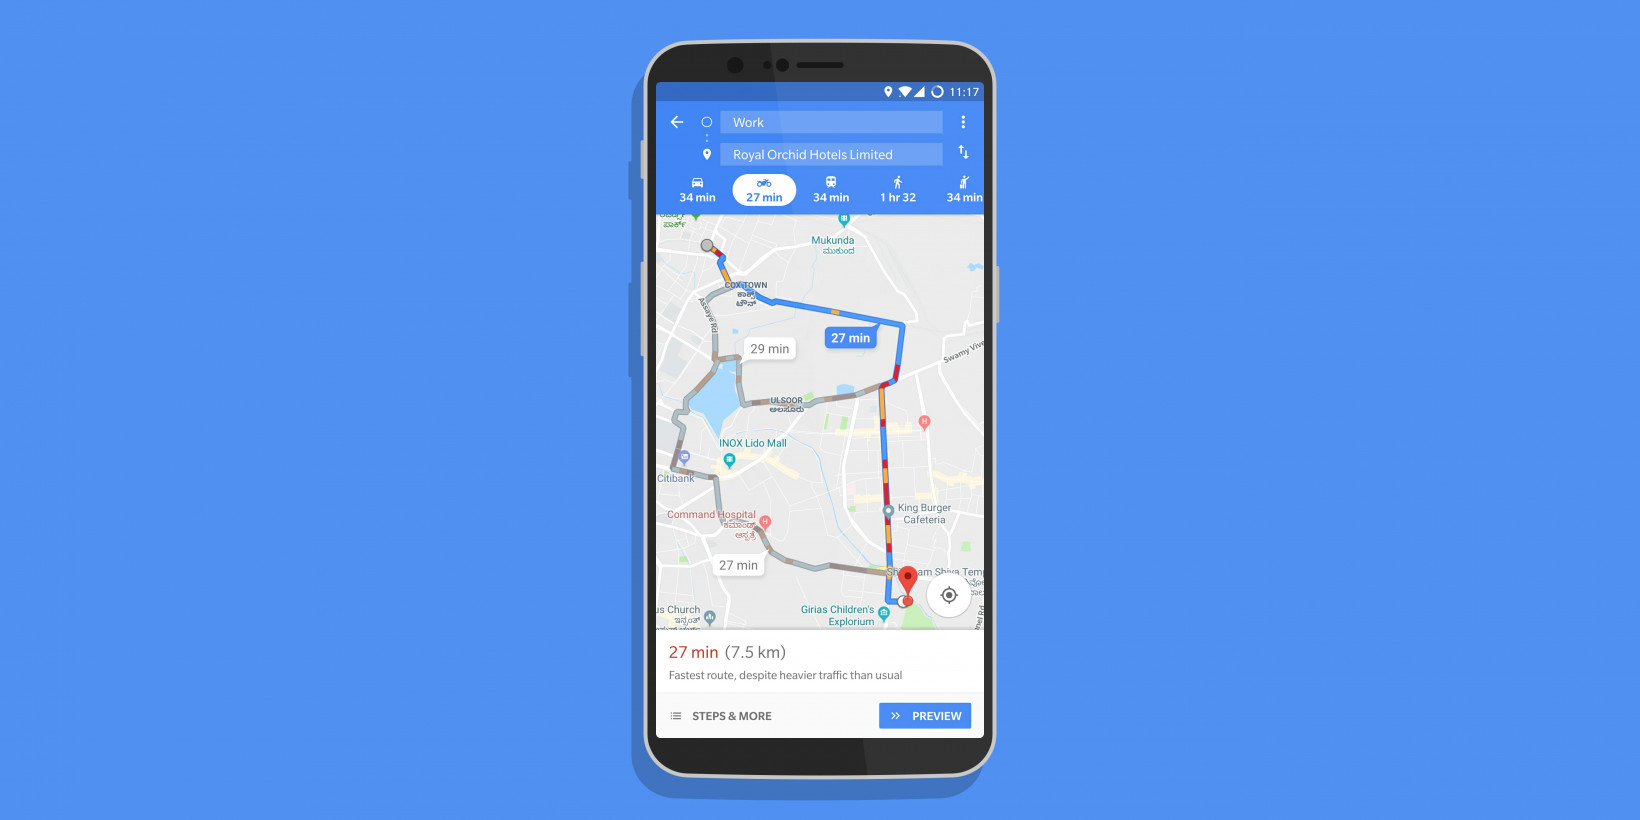 Google Maps' new two-wheeler mode shows fast routes for beating traffic